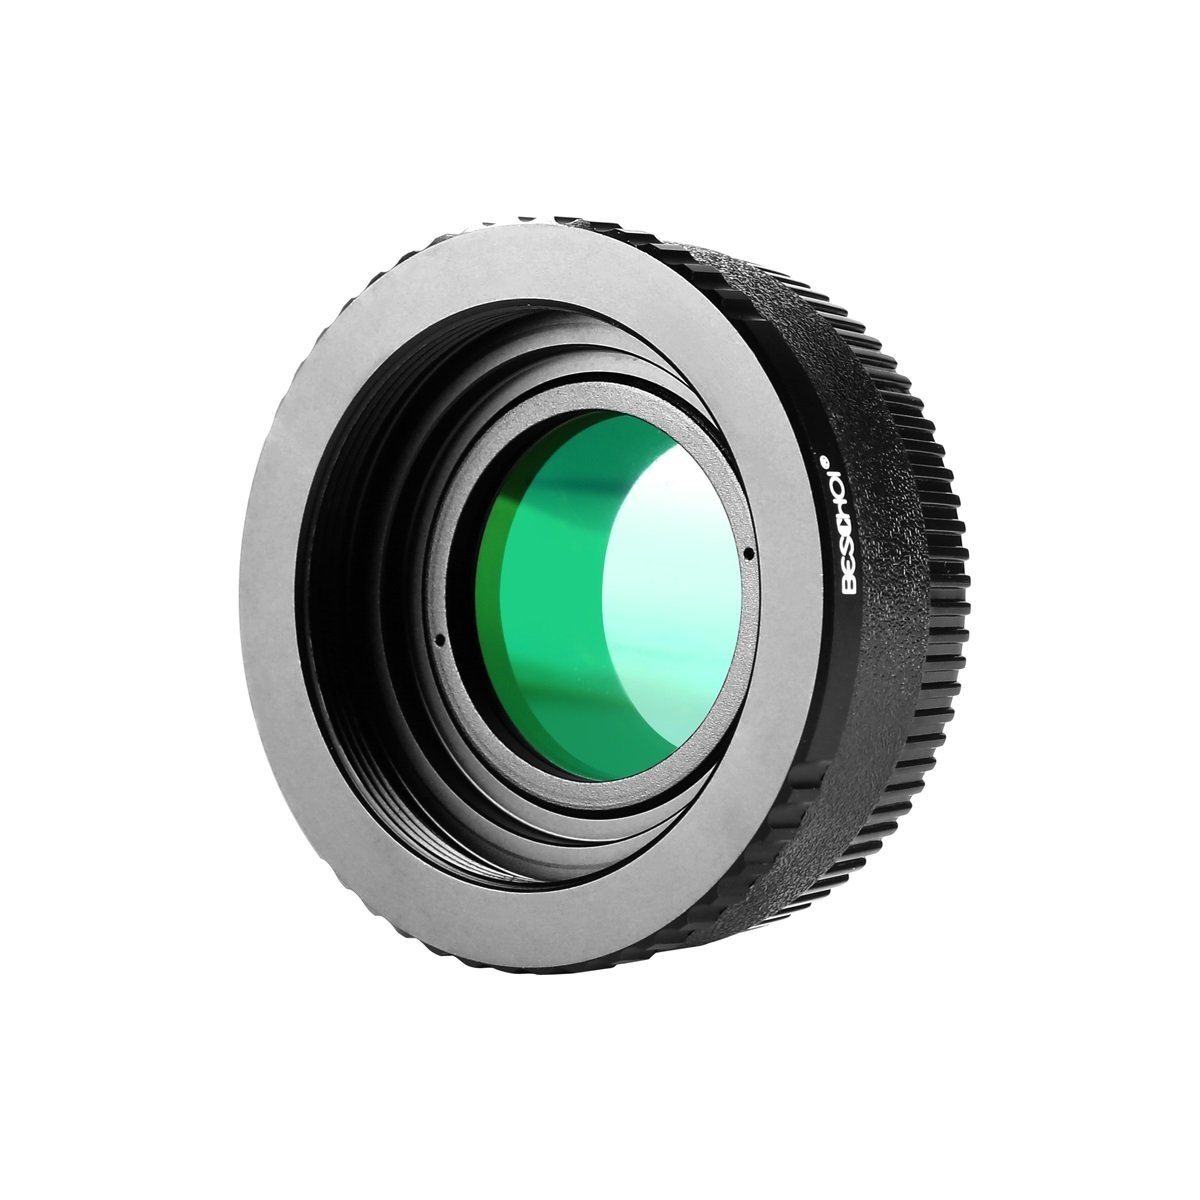 Beschoi Lens Mount Adapter With Built In Glass For M42 Parts Diagram Where To Get A Nikon D5000 Slr 42mm X1 Thread Screw F Camera Body Fits D7100 D7000